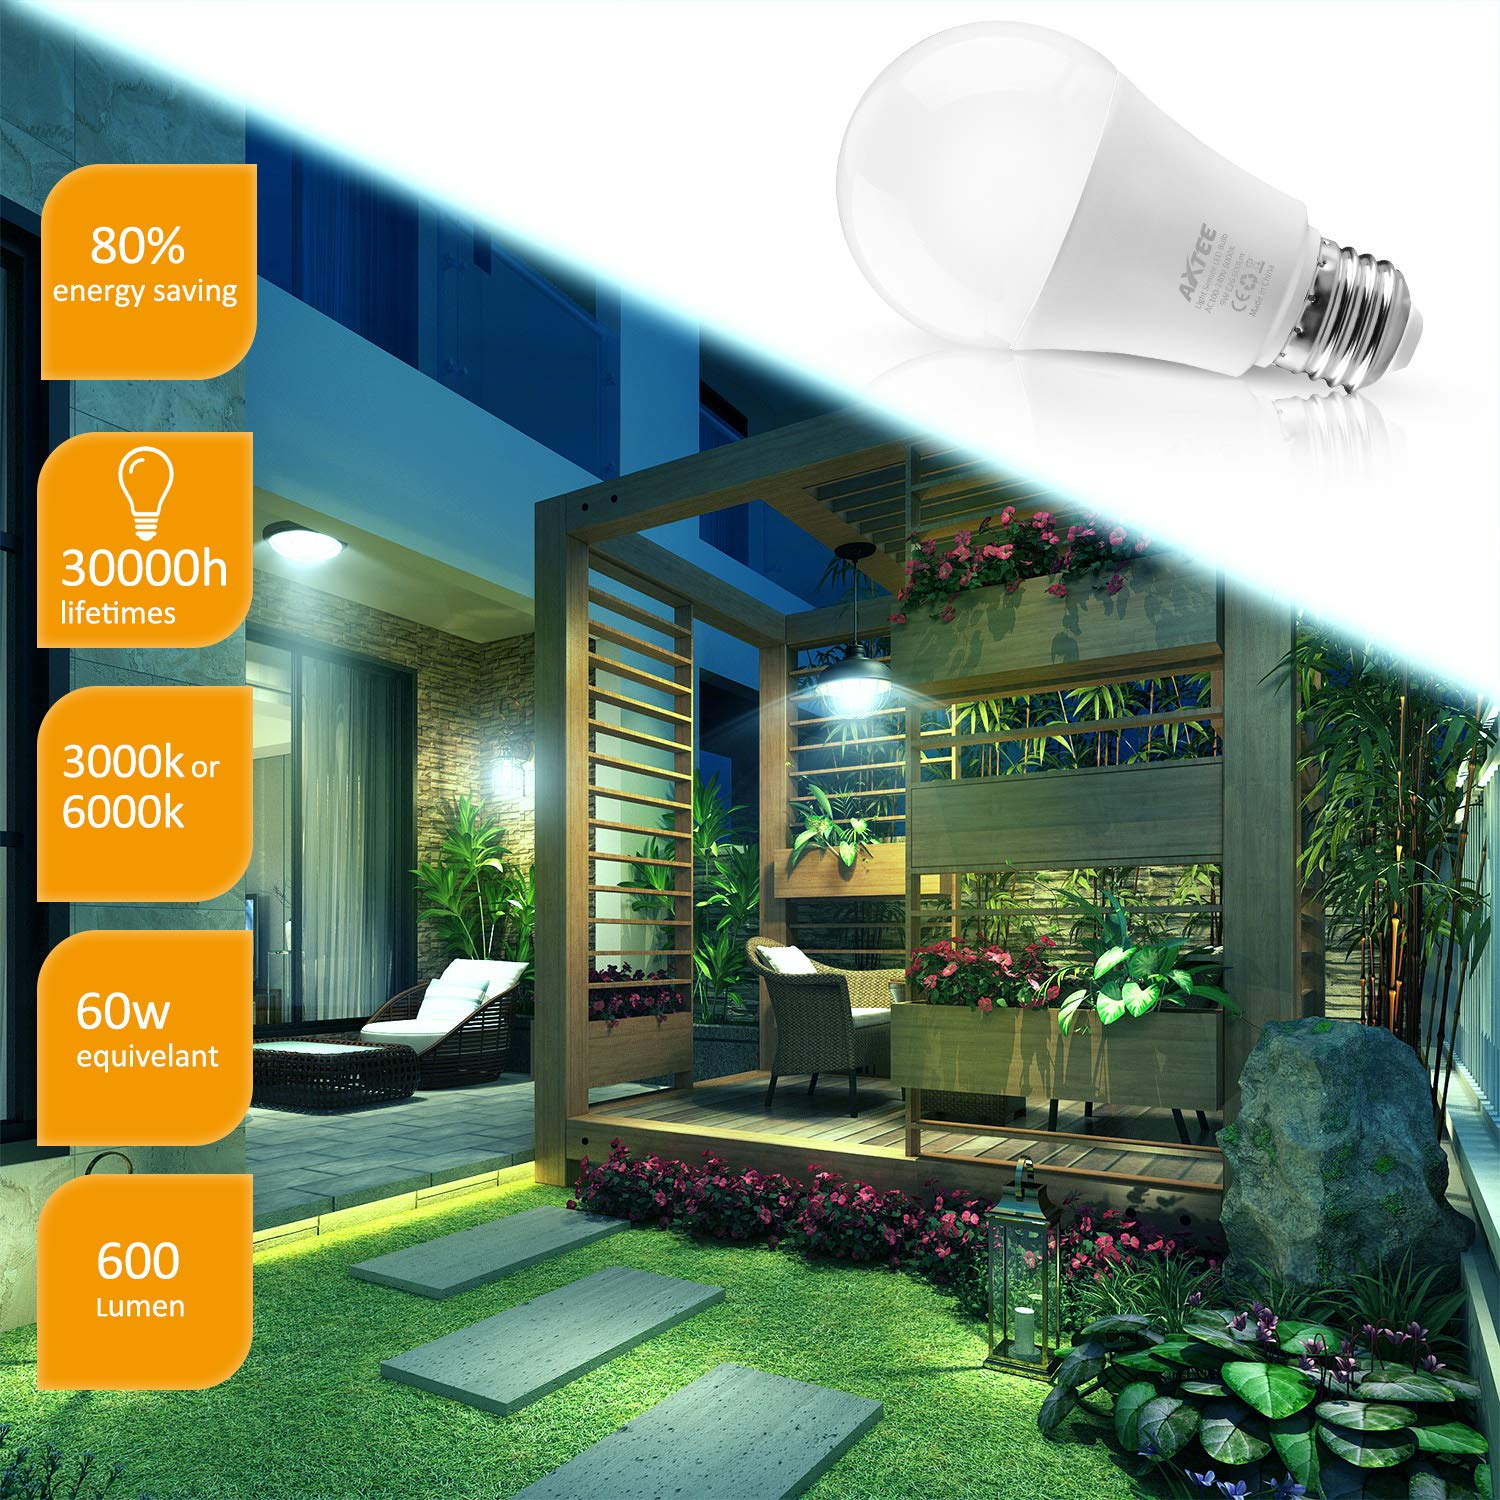 Smart Light Bulb Dusk to Dawn Sensor Led Light Bulbs Indoor/Outdoor E26 Base Socket Auto On/Off Lighting Lamp 9W (6000K, 4 Pack)